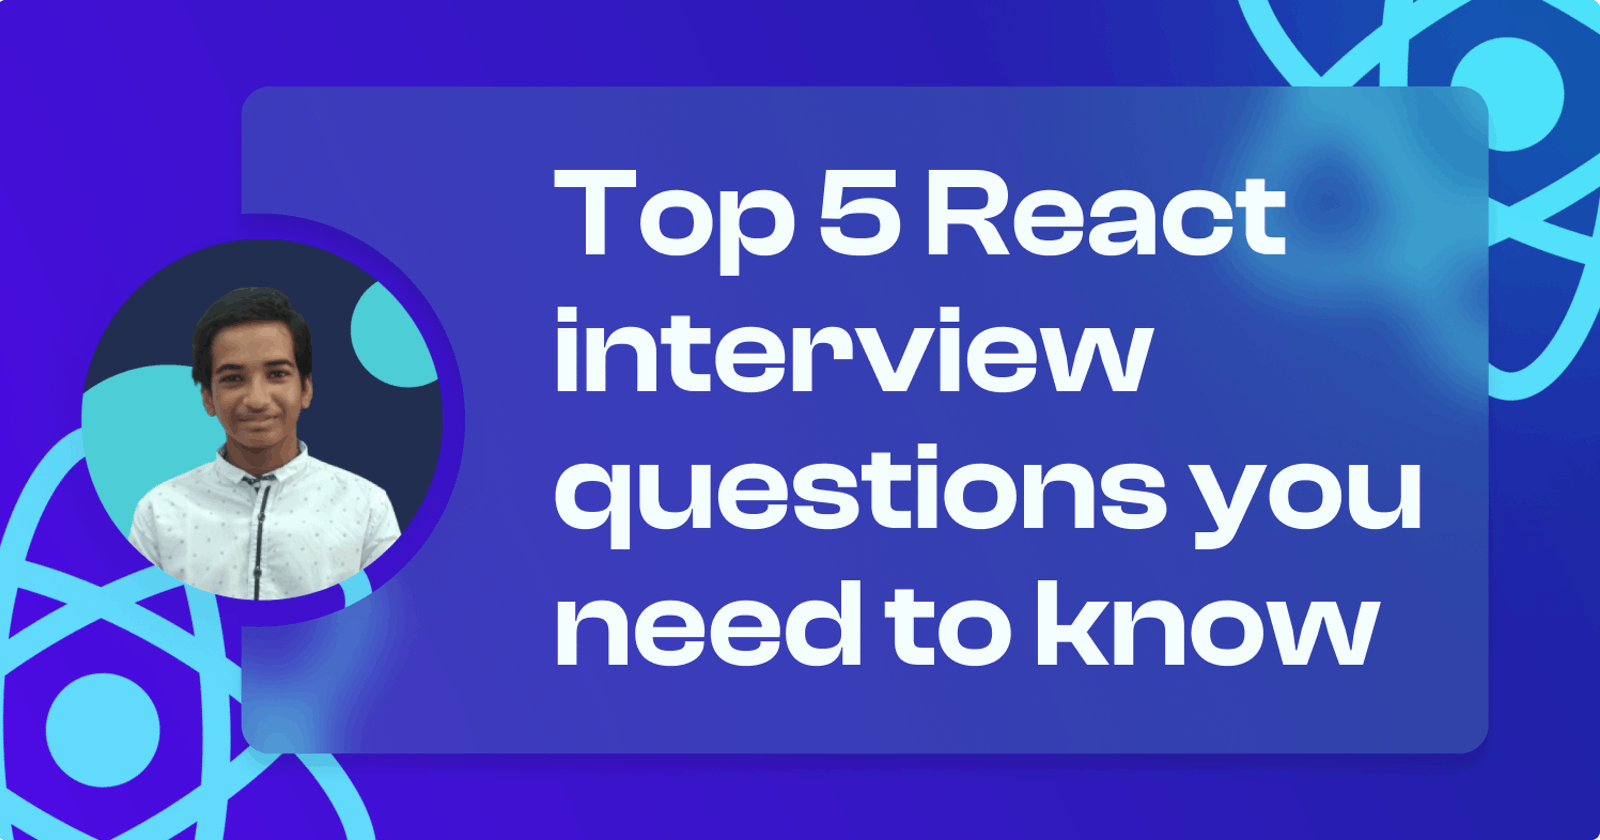 Top 5 React interview questions you need to know